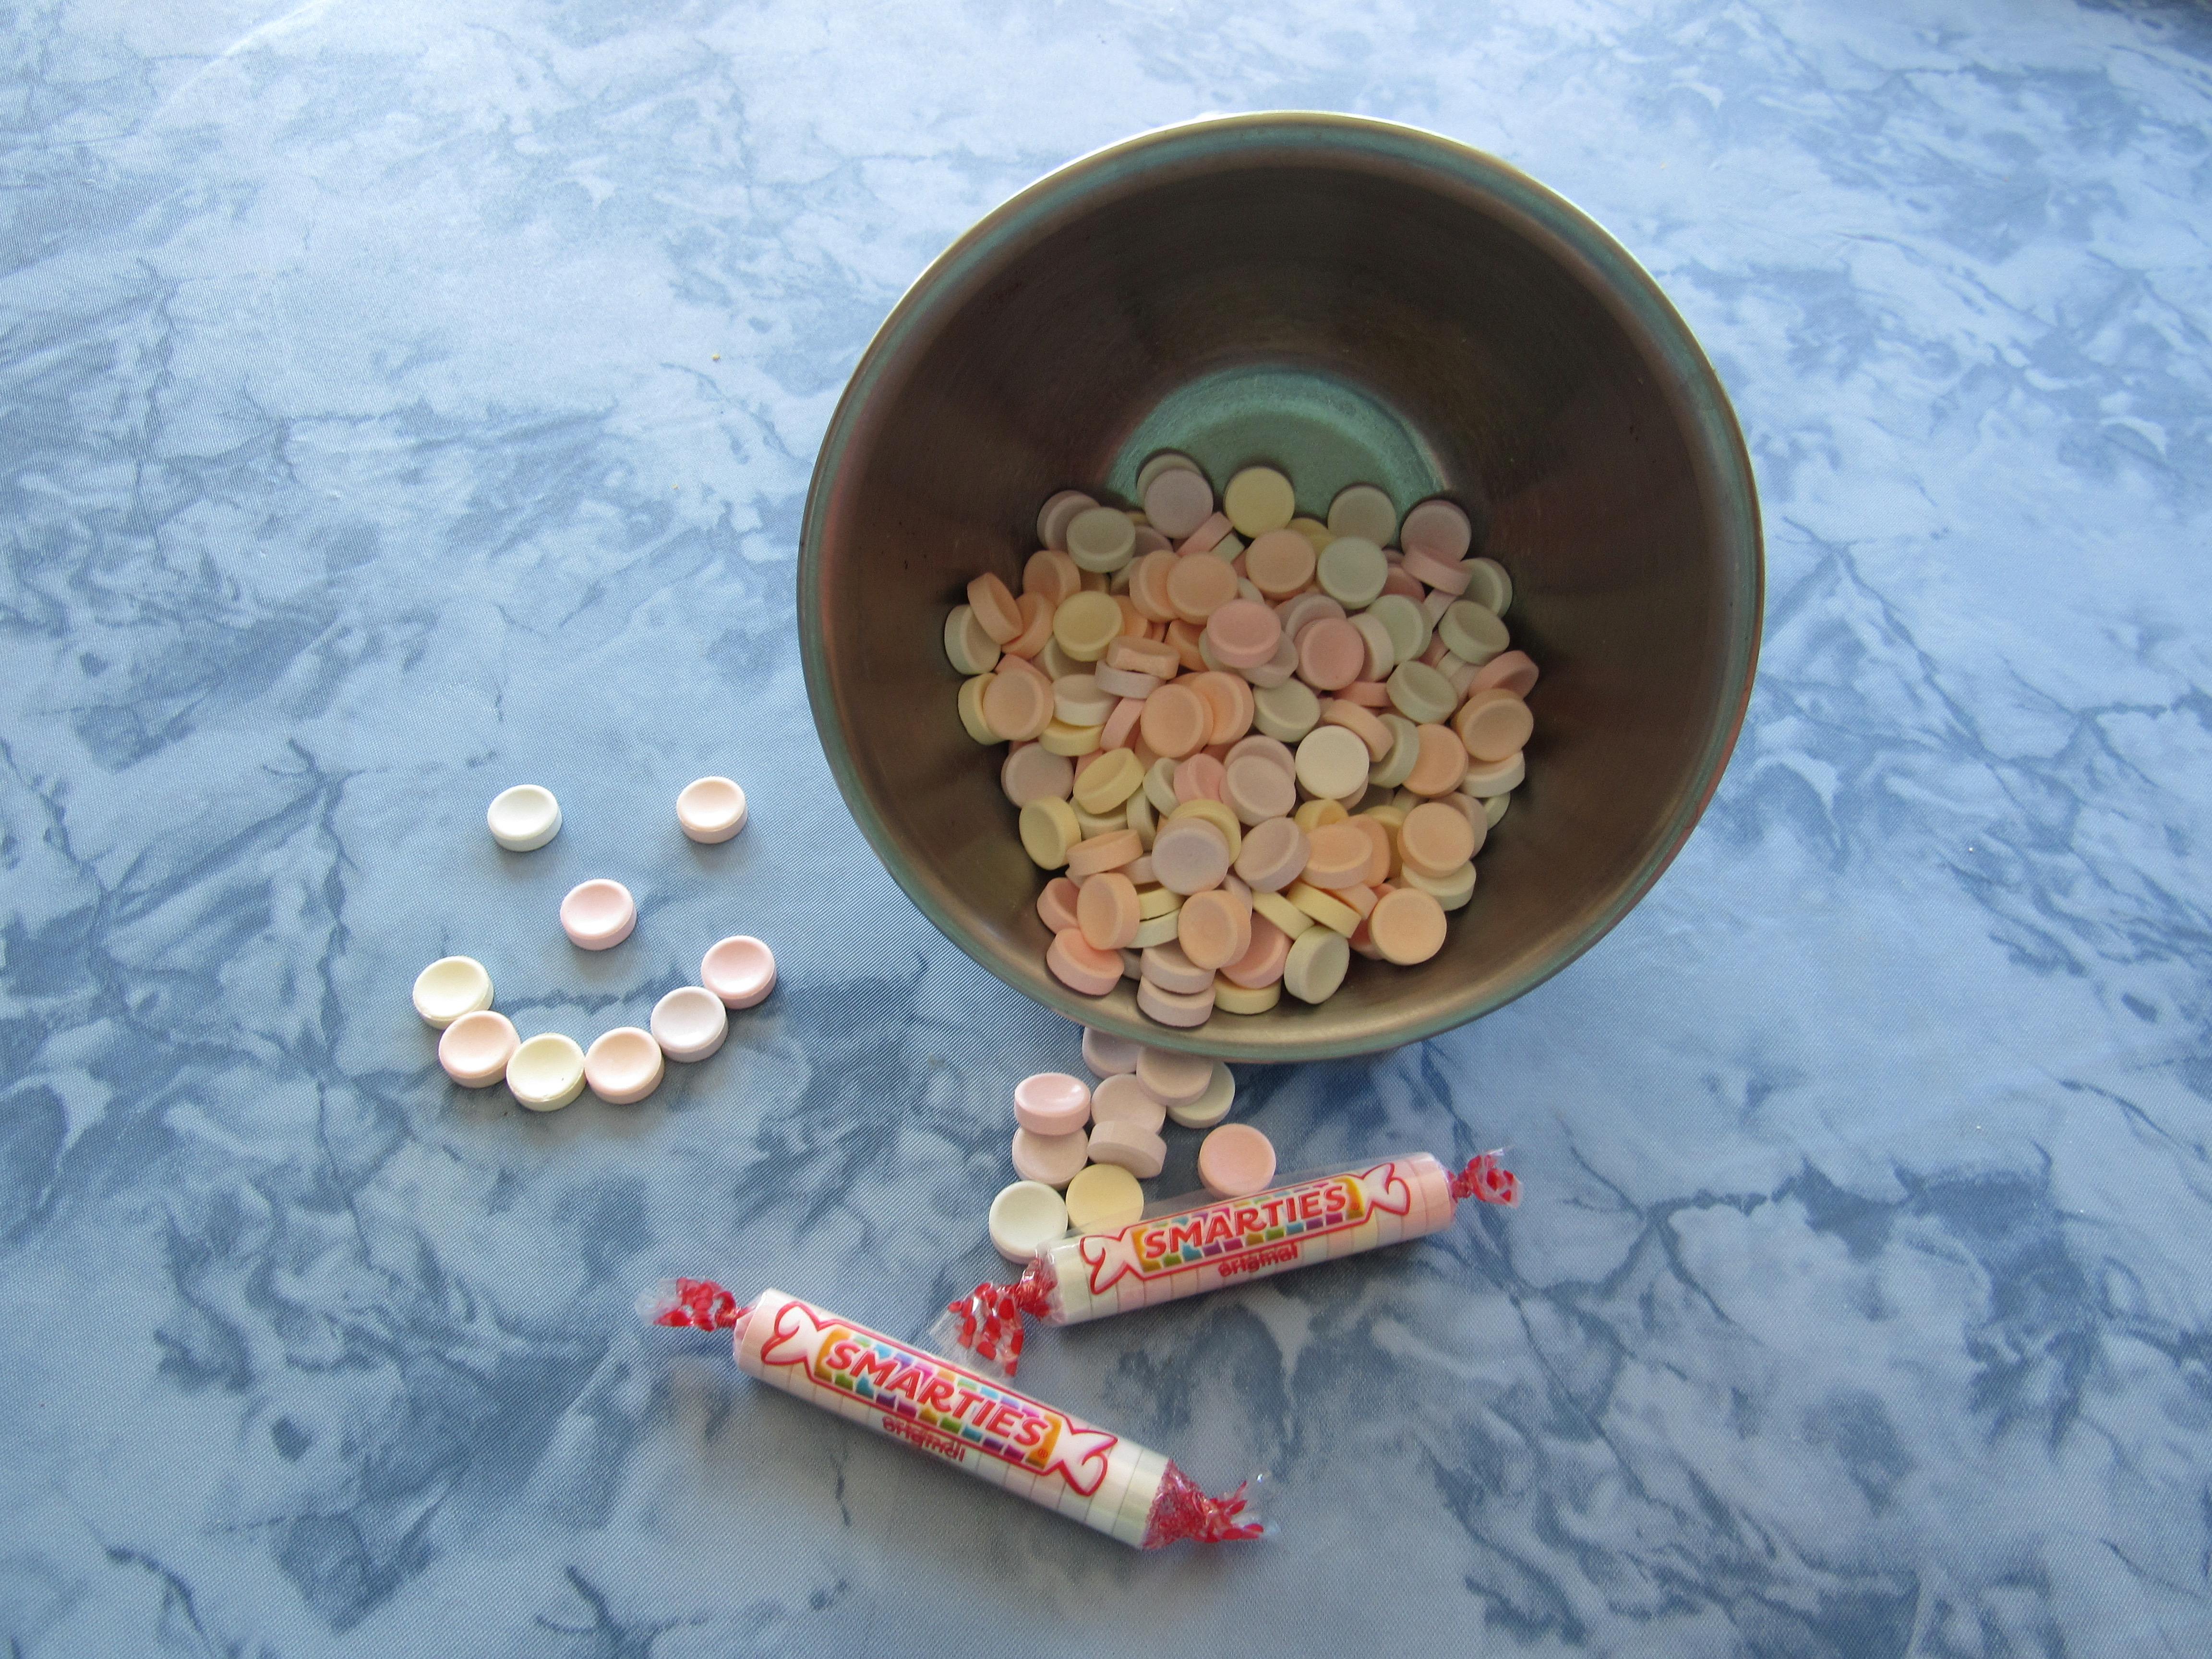 Picture of Smarties candies as used in the activity